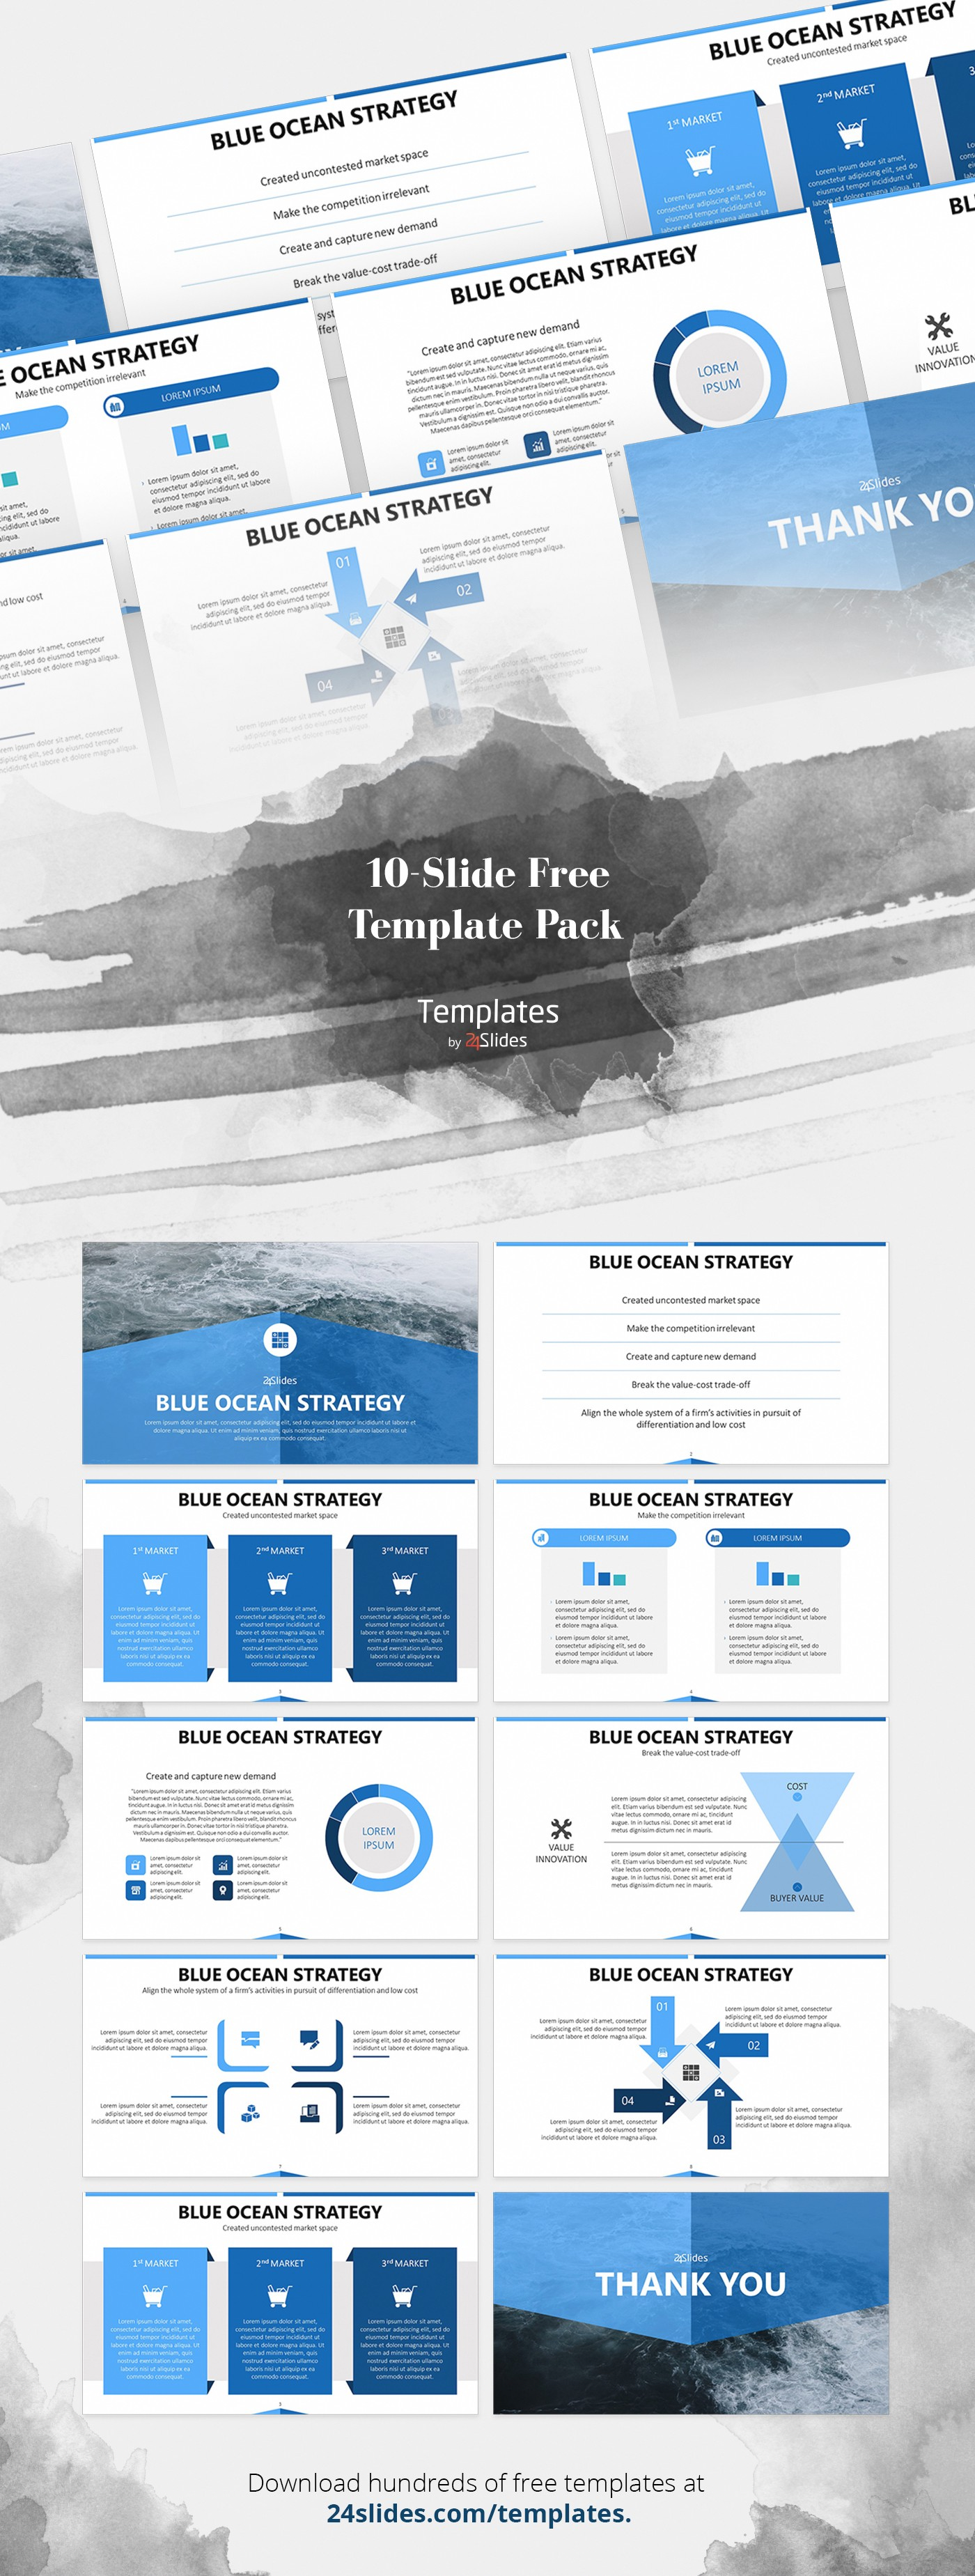 Blue Ocean Strategy Presentation Template Free Download